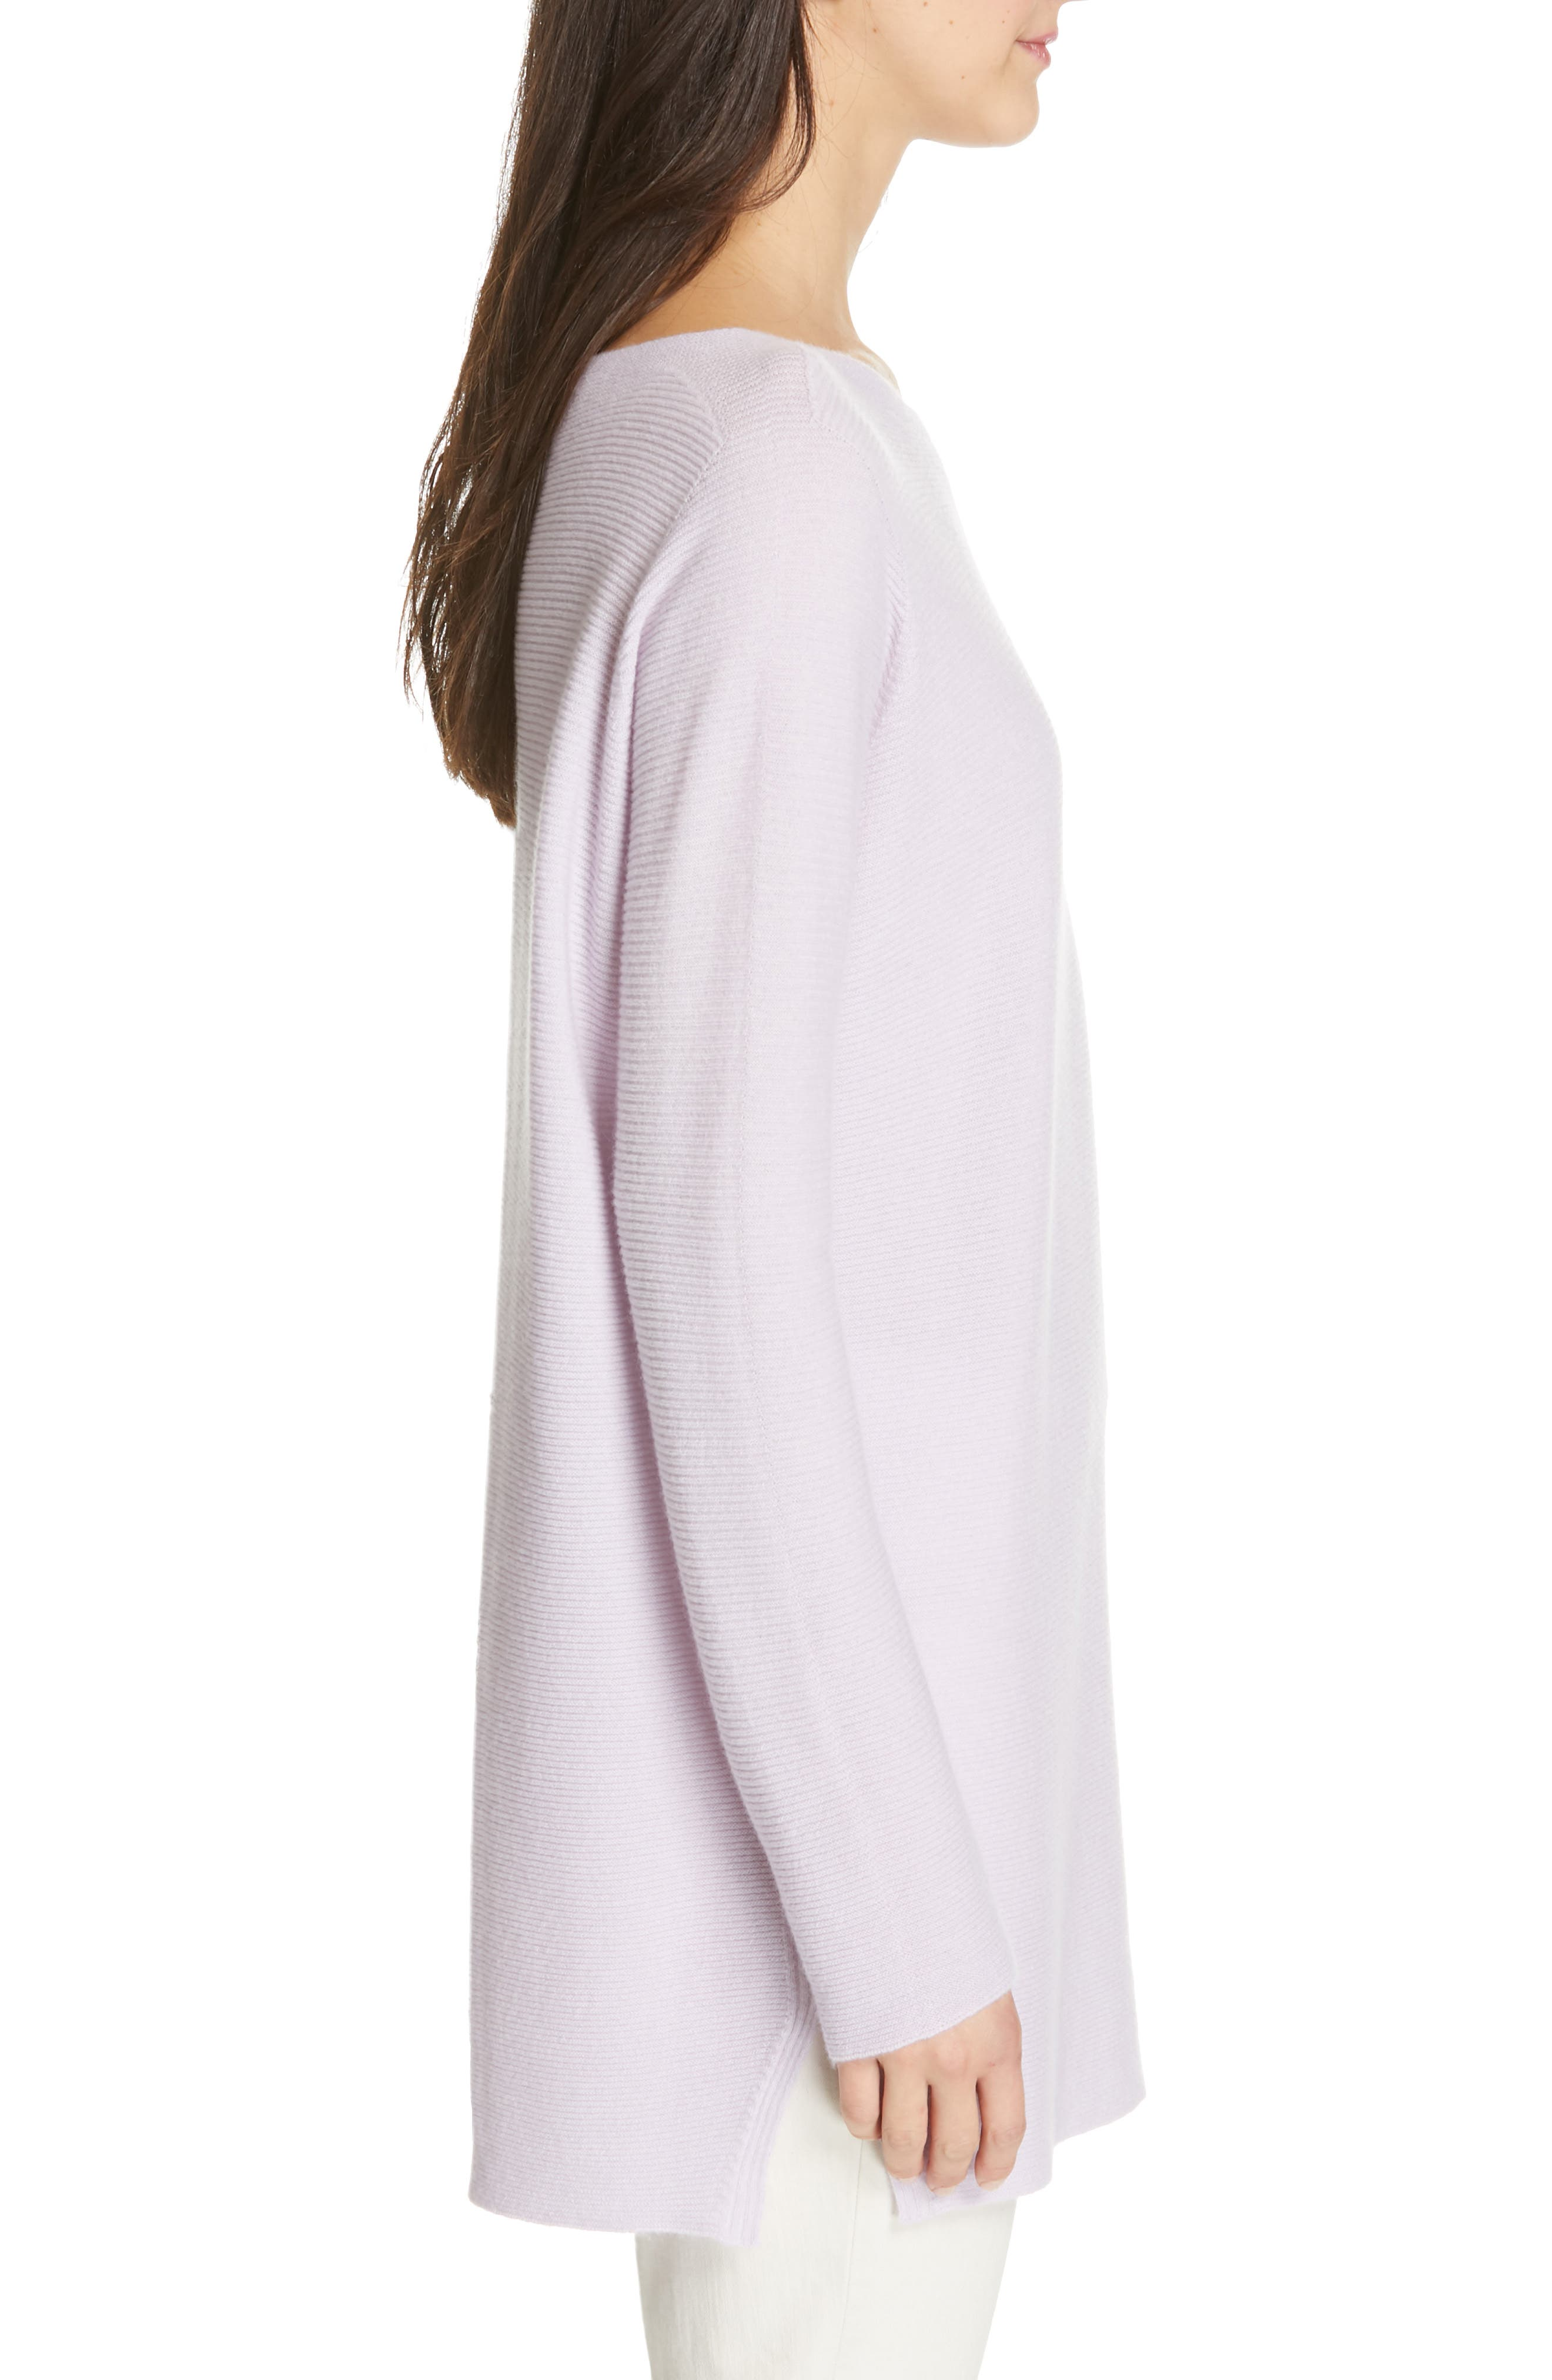 EILEEN FISHER, Bateau Neck Cashmere Tunic Sweater, Alternate thumbnail 3, color, MALLOW